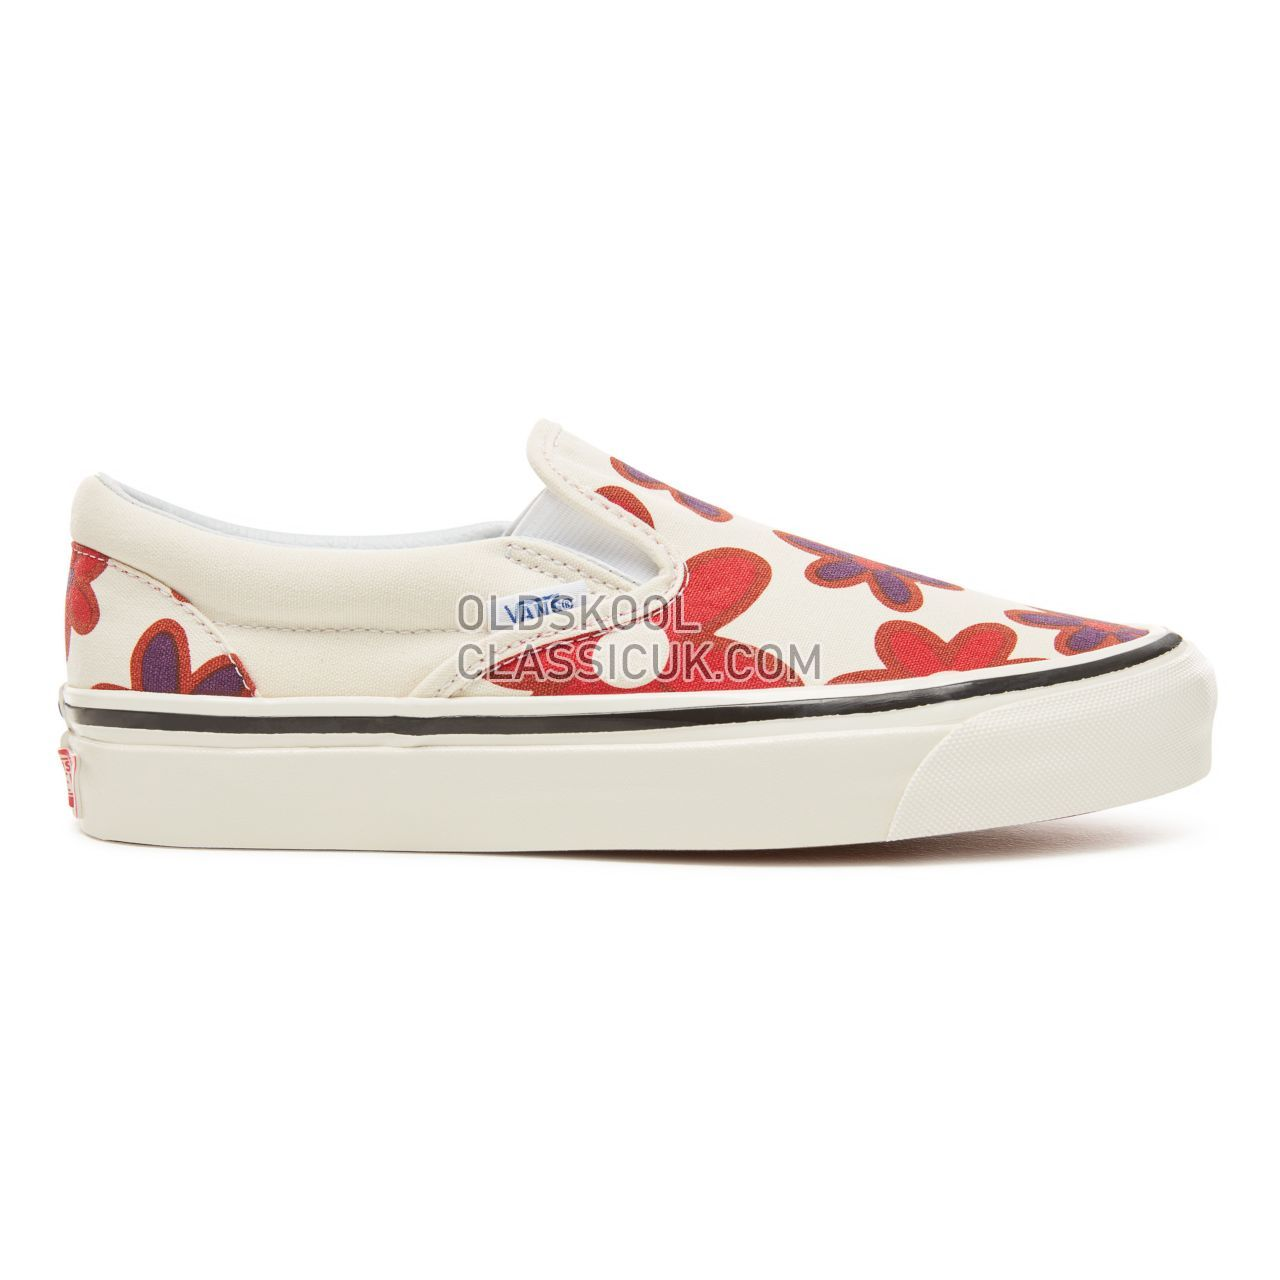 Vans Anaheim Factory Classic Slip-On 98 Sneakers Womens (Anaheim Factory) Og White/Flower Power VA3JEXU7Y Shoes